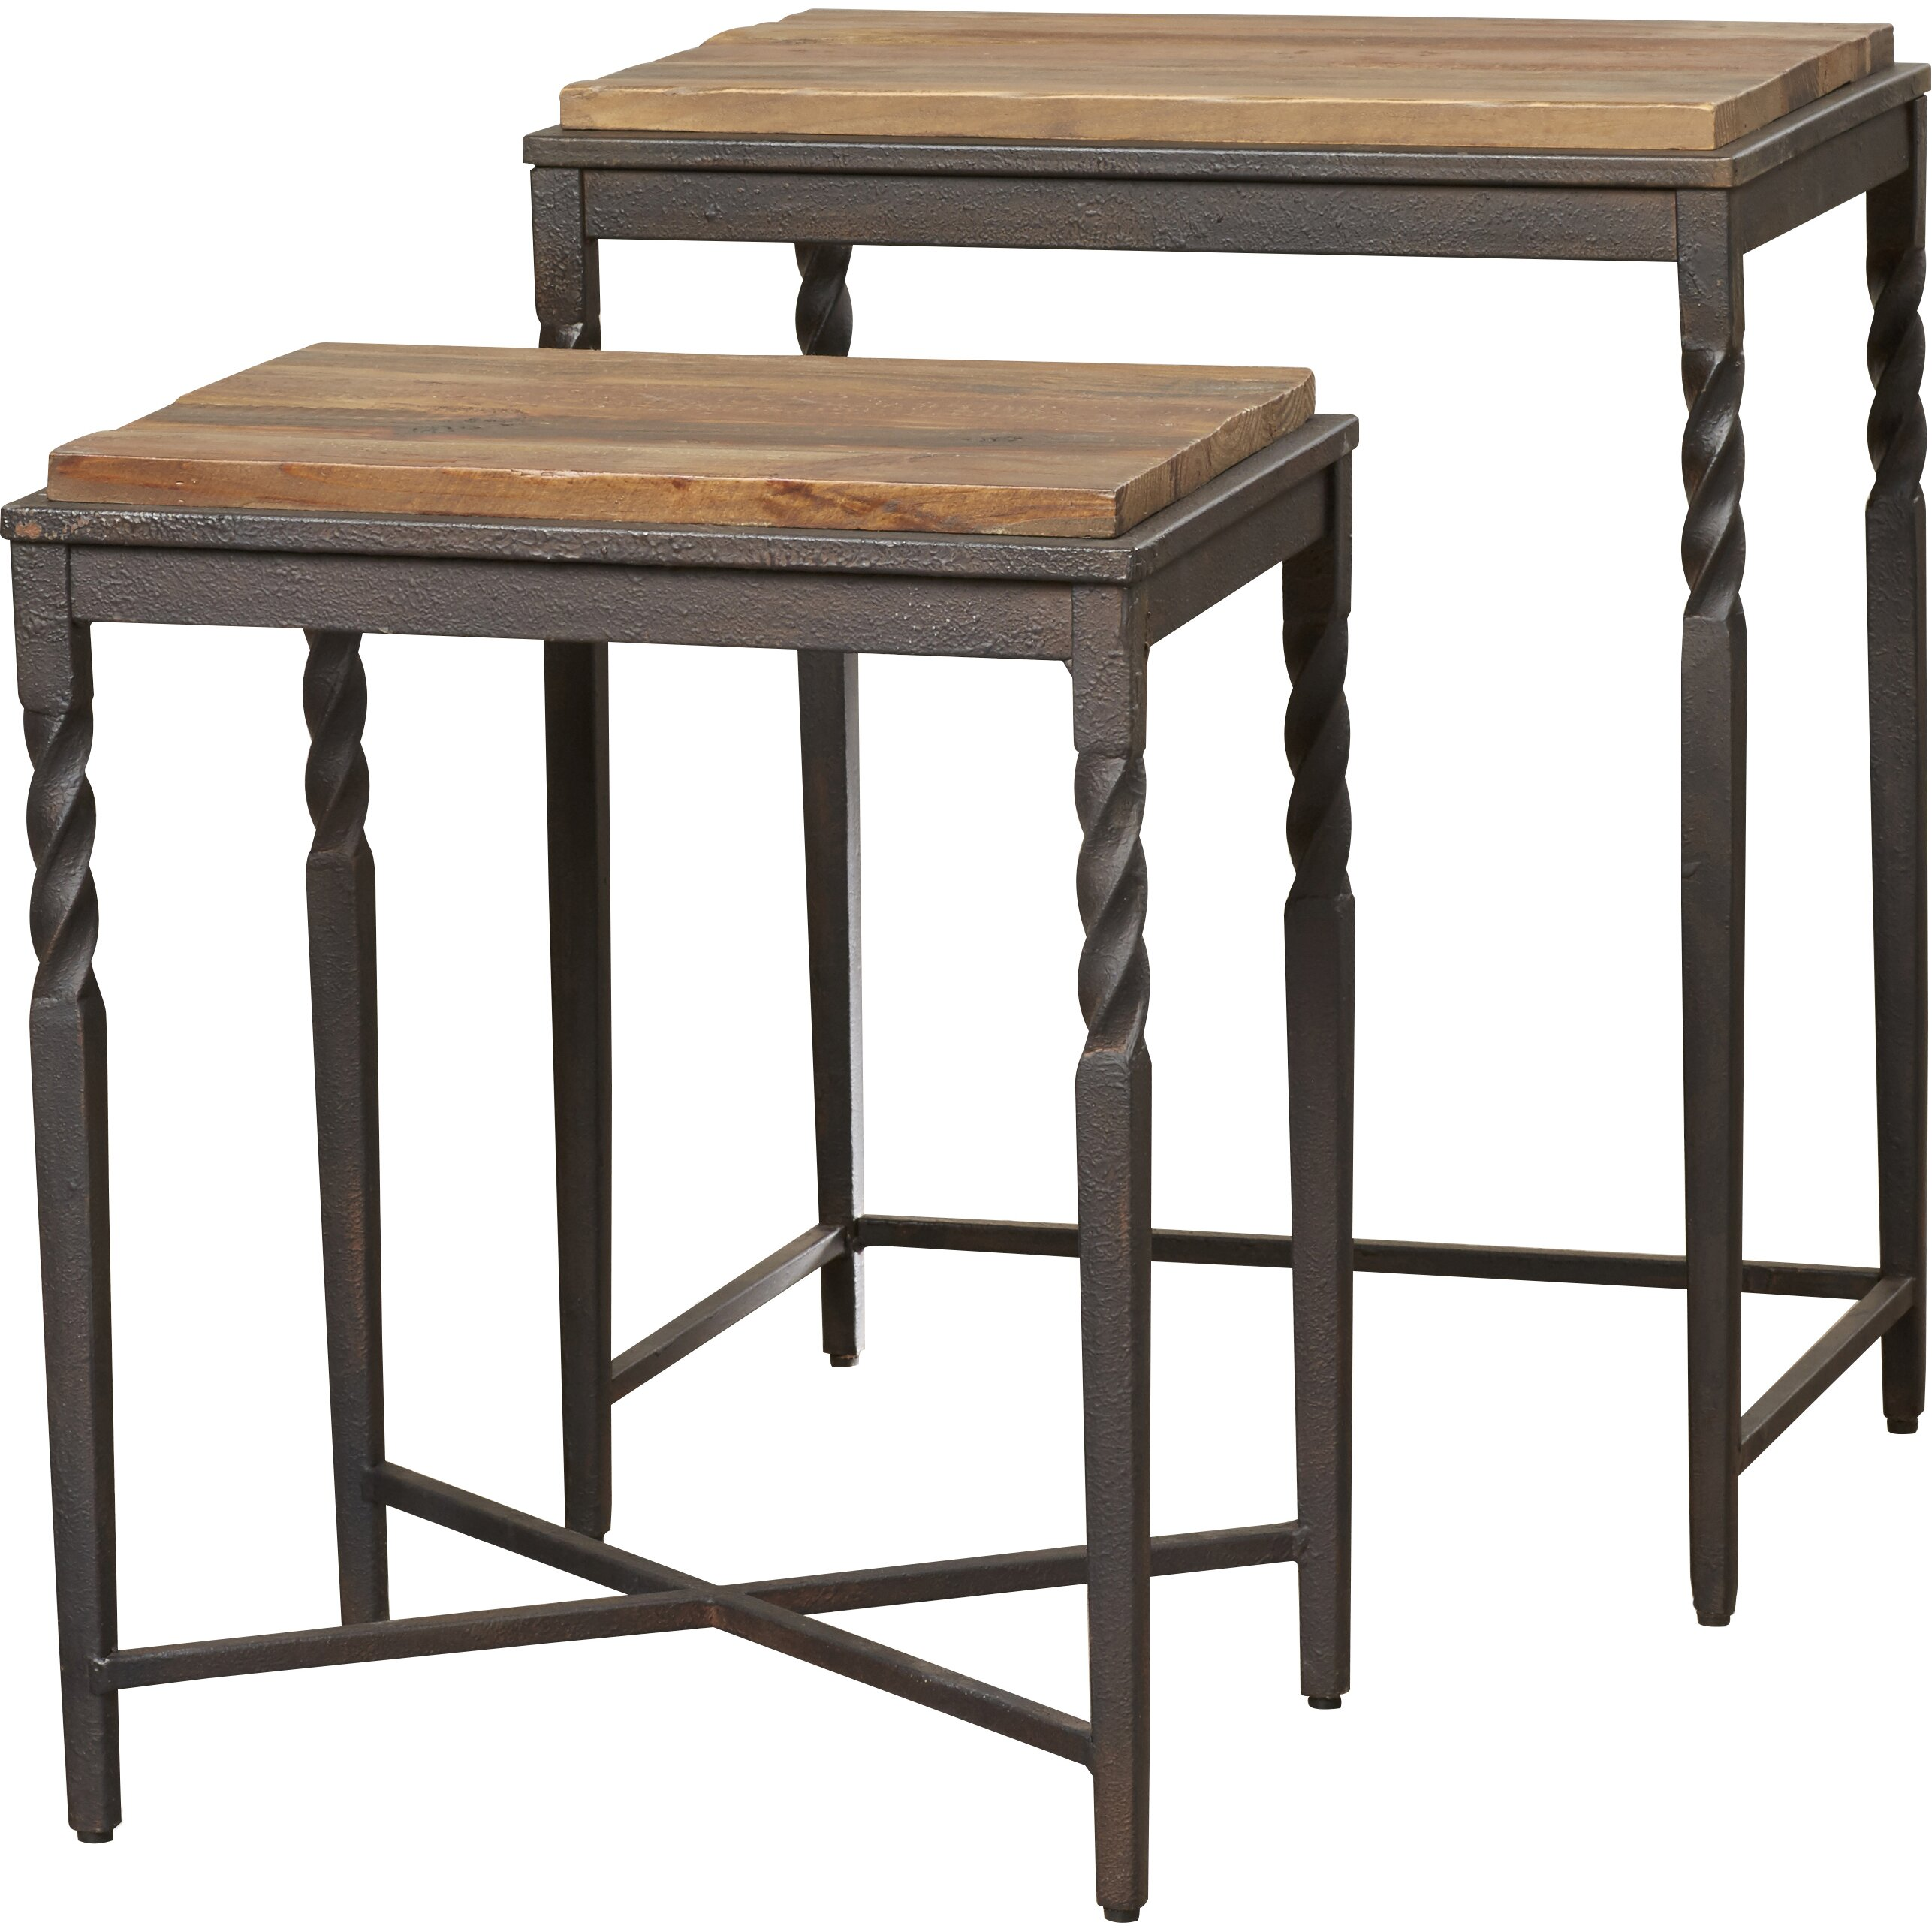 Darby Home Co 2 Piece Nesting Tables & Reviews | Wayfair